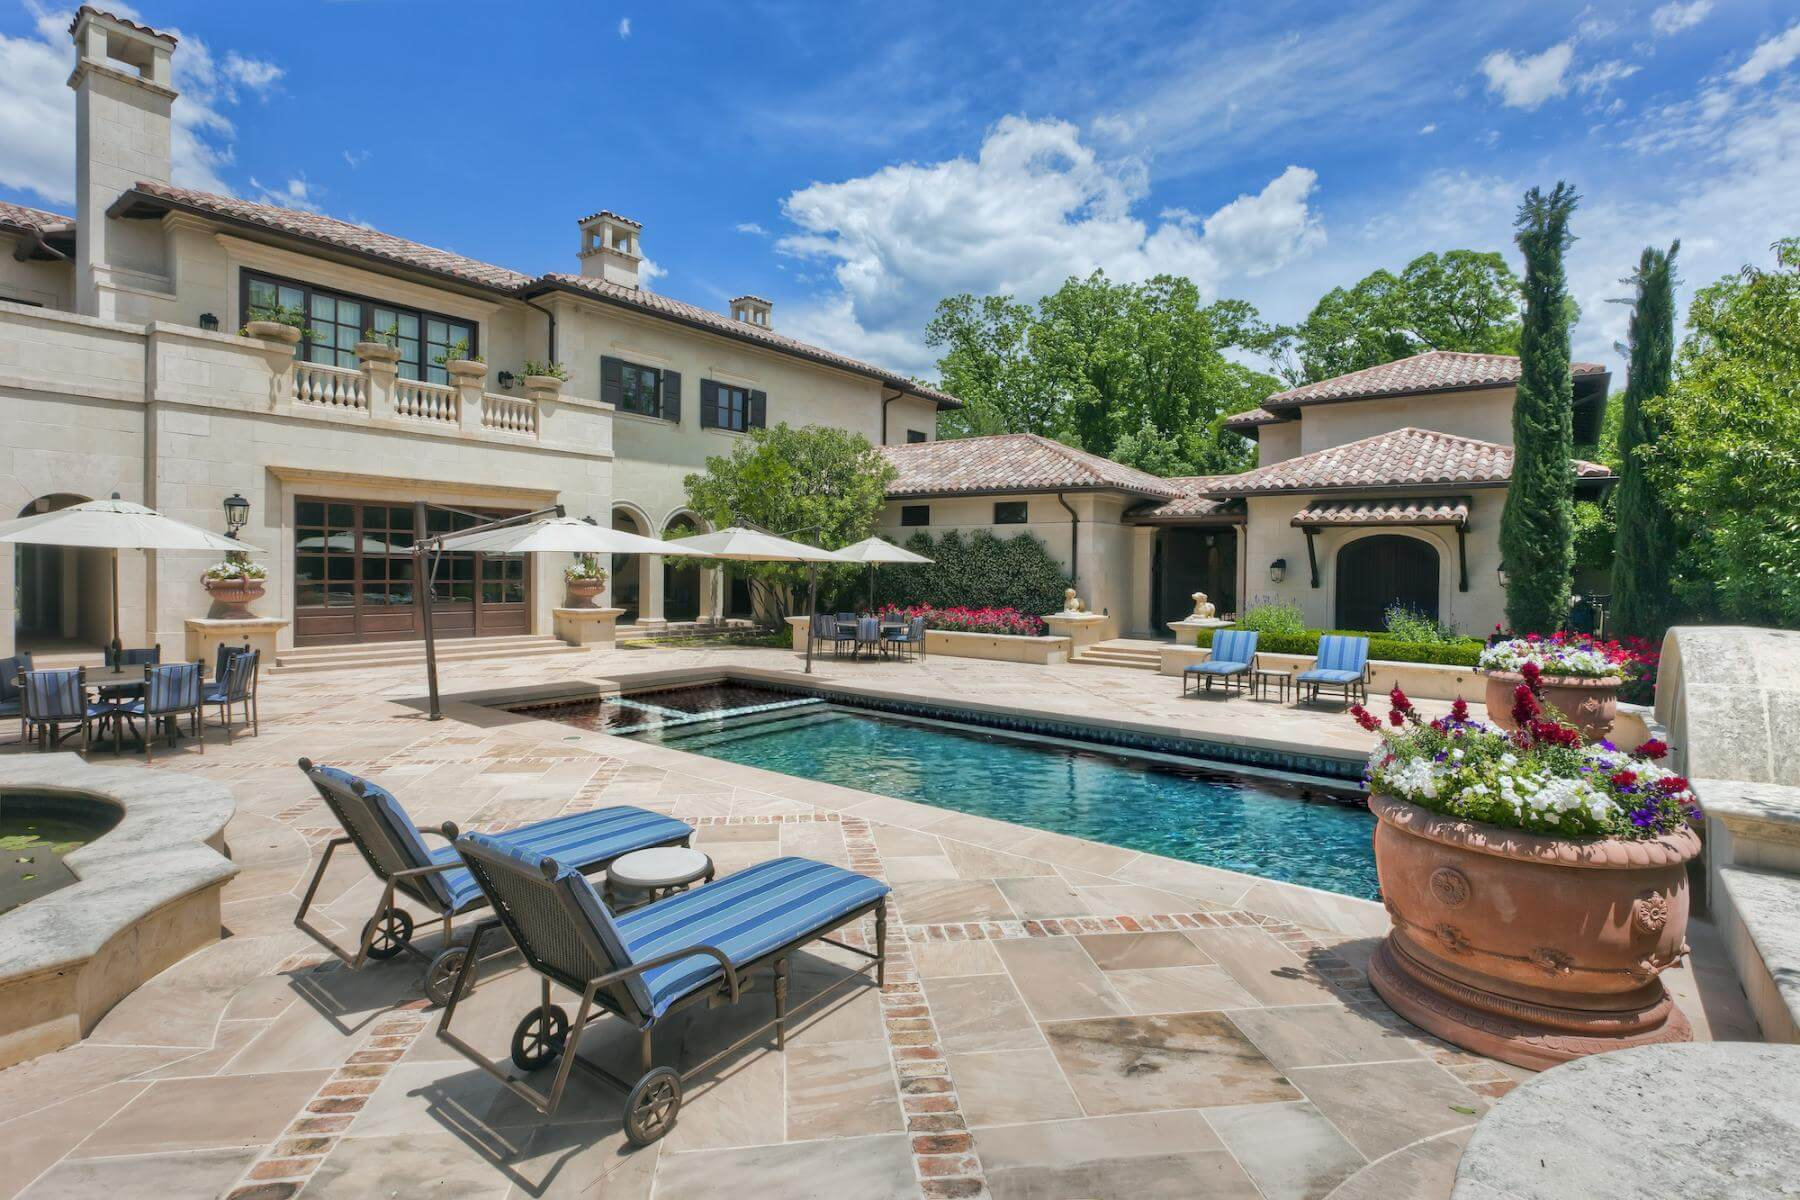 Alamo heights pool builder keith zars pools for 3d pool design free